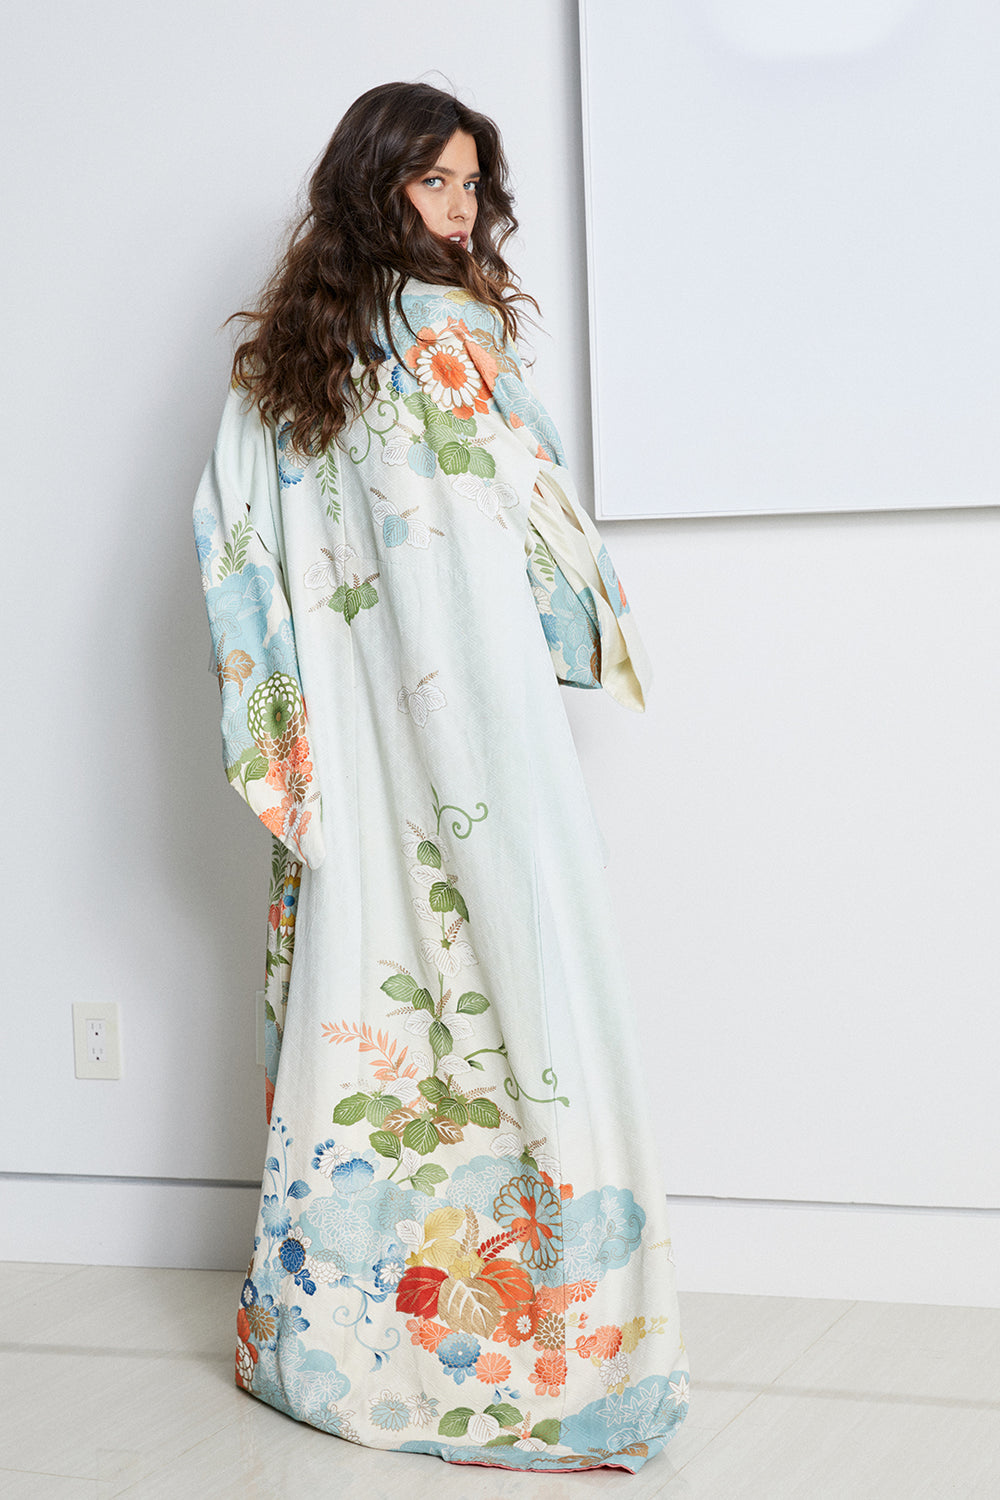 White, cream blue print long vintage kimono with nature detailing and asian inspired